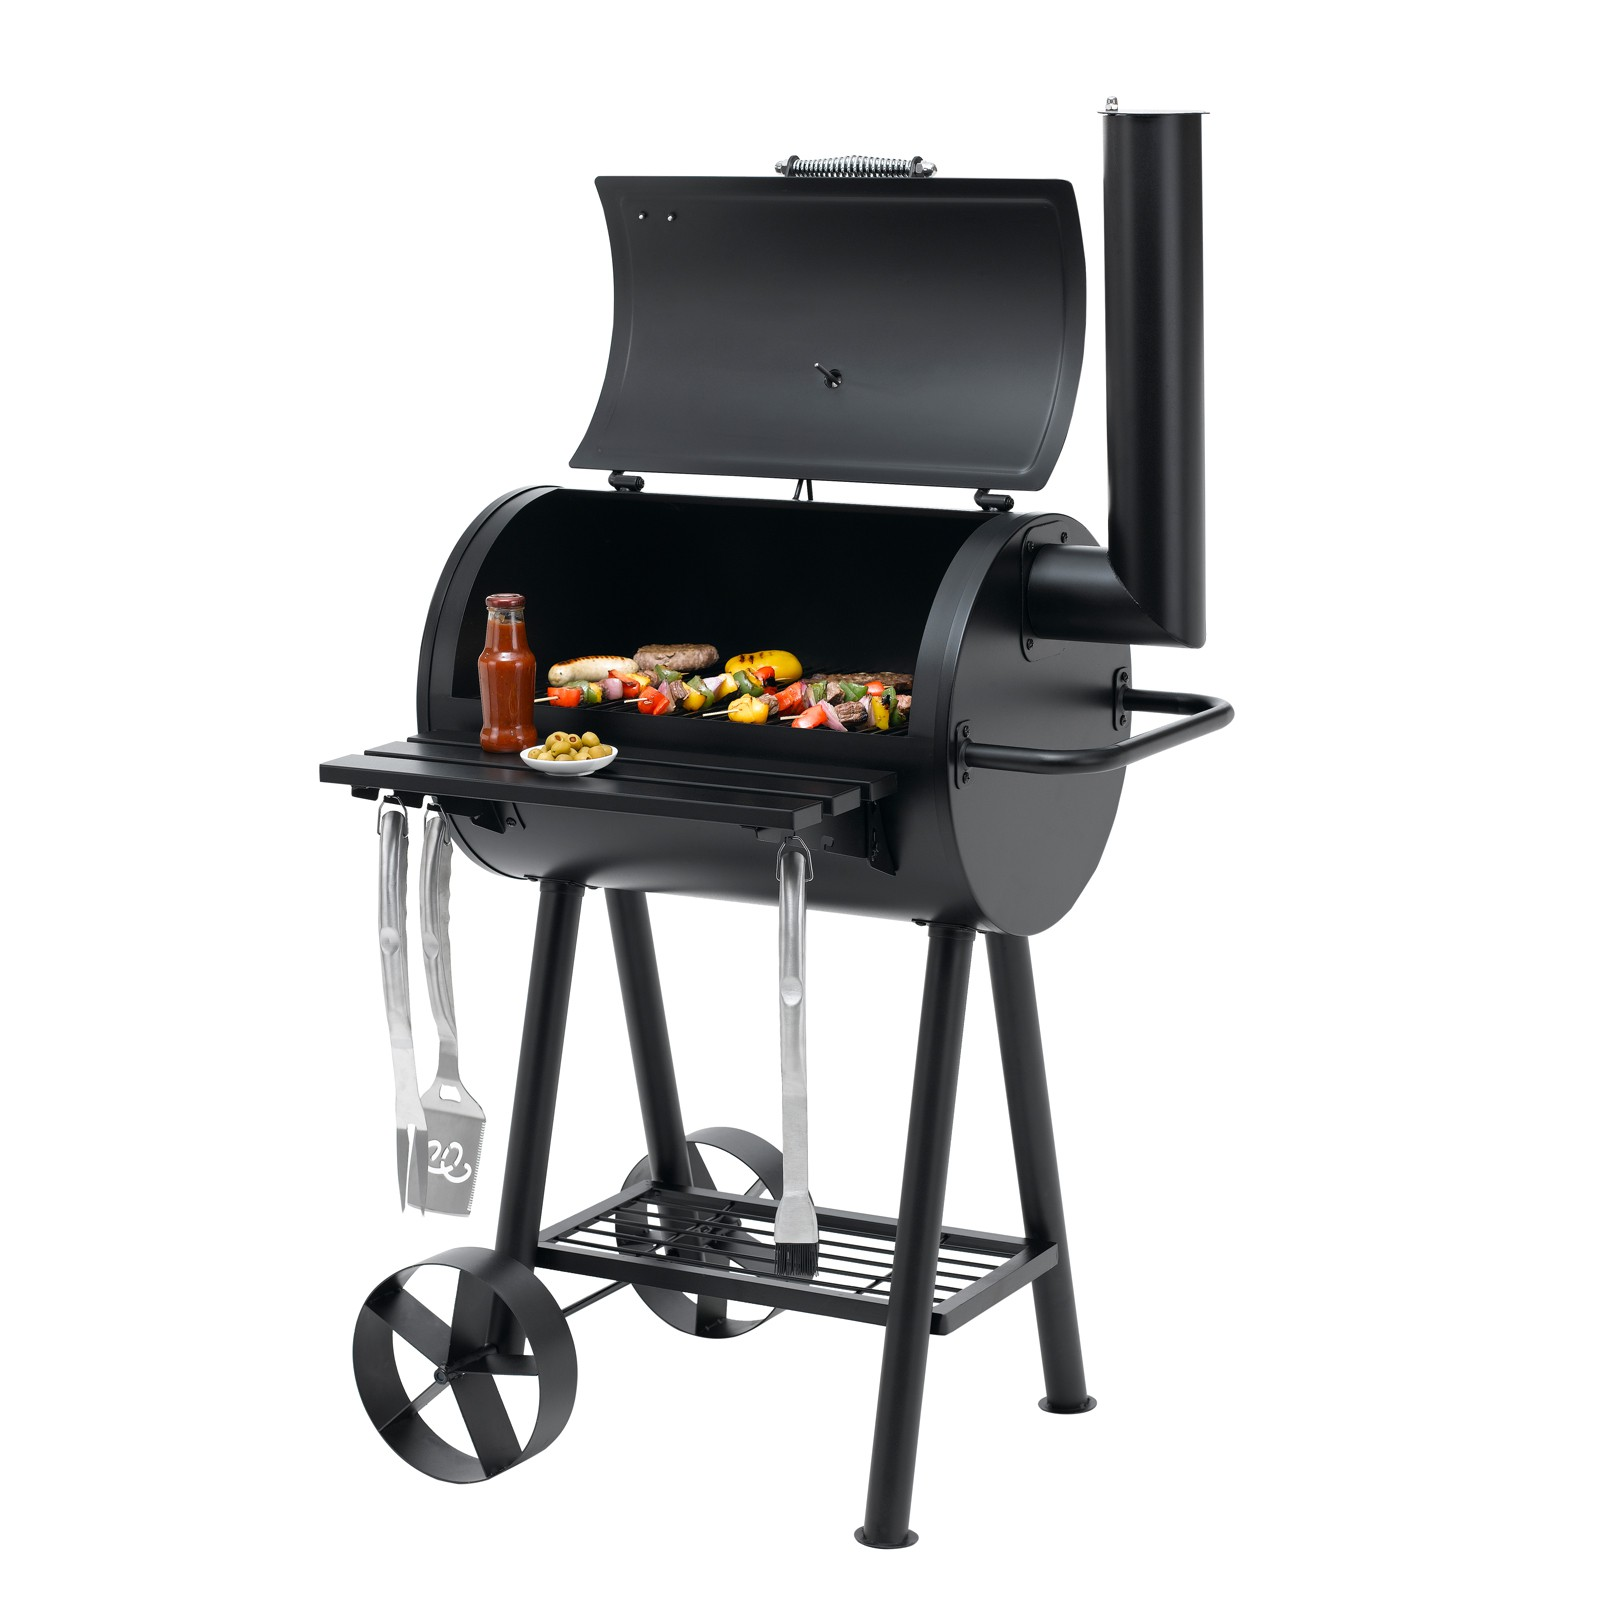 tepro holzkohlegrill grillfass kohlegrill grillwagen smoker berkeley 64 5x43 5cm ebay. Black Bedroom Furniture Sets. Home Design Ideas